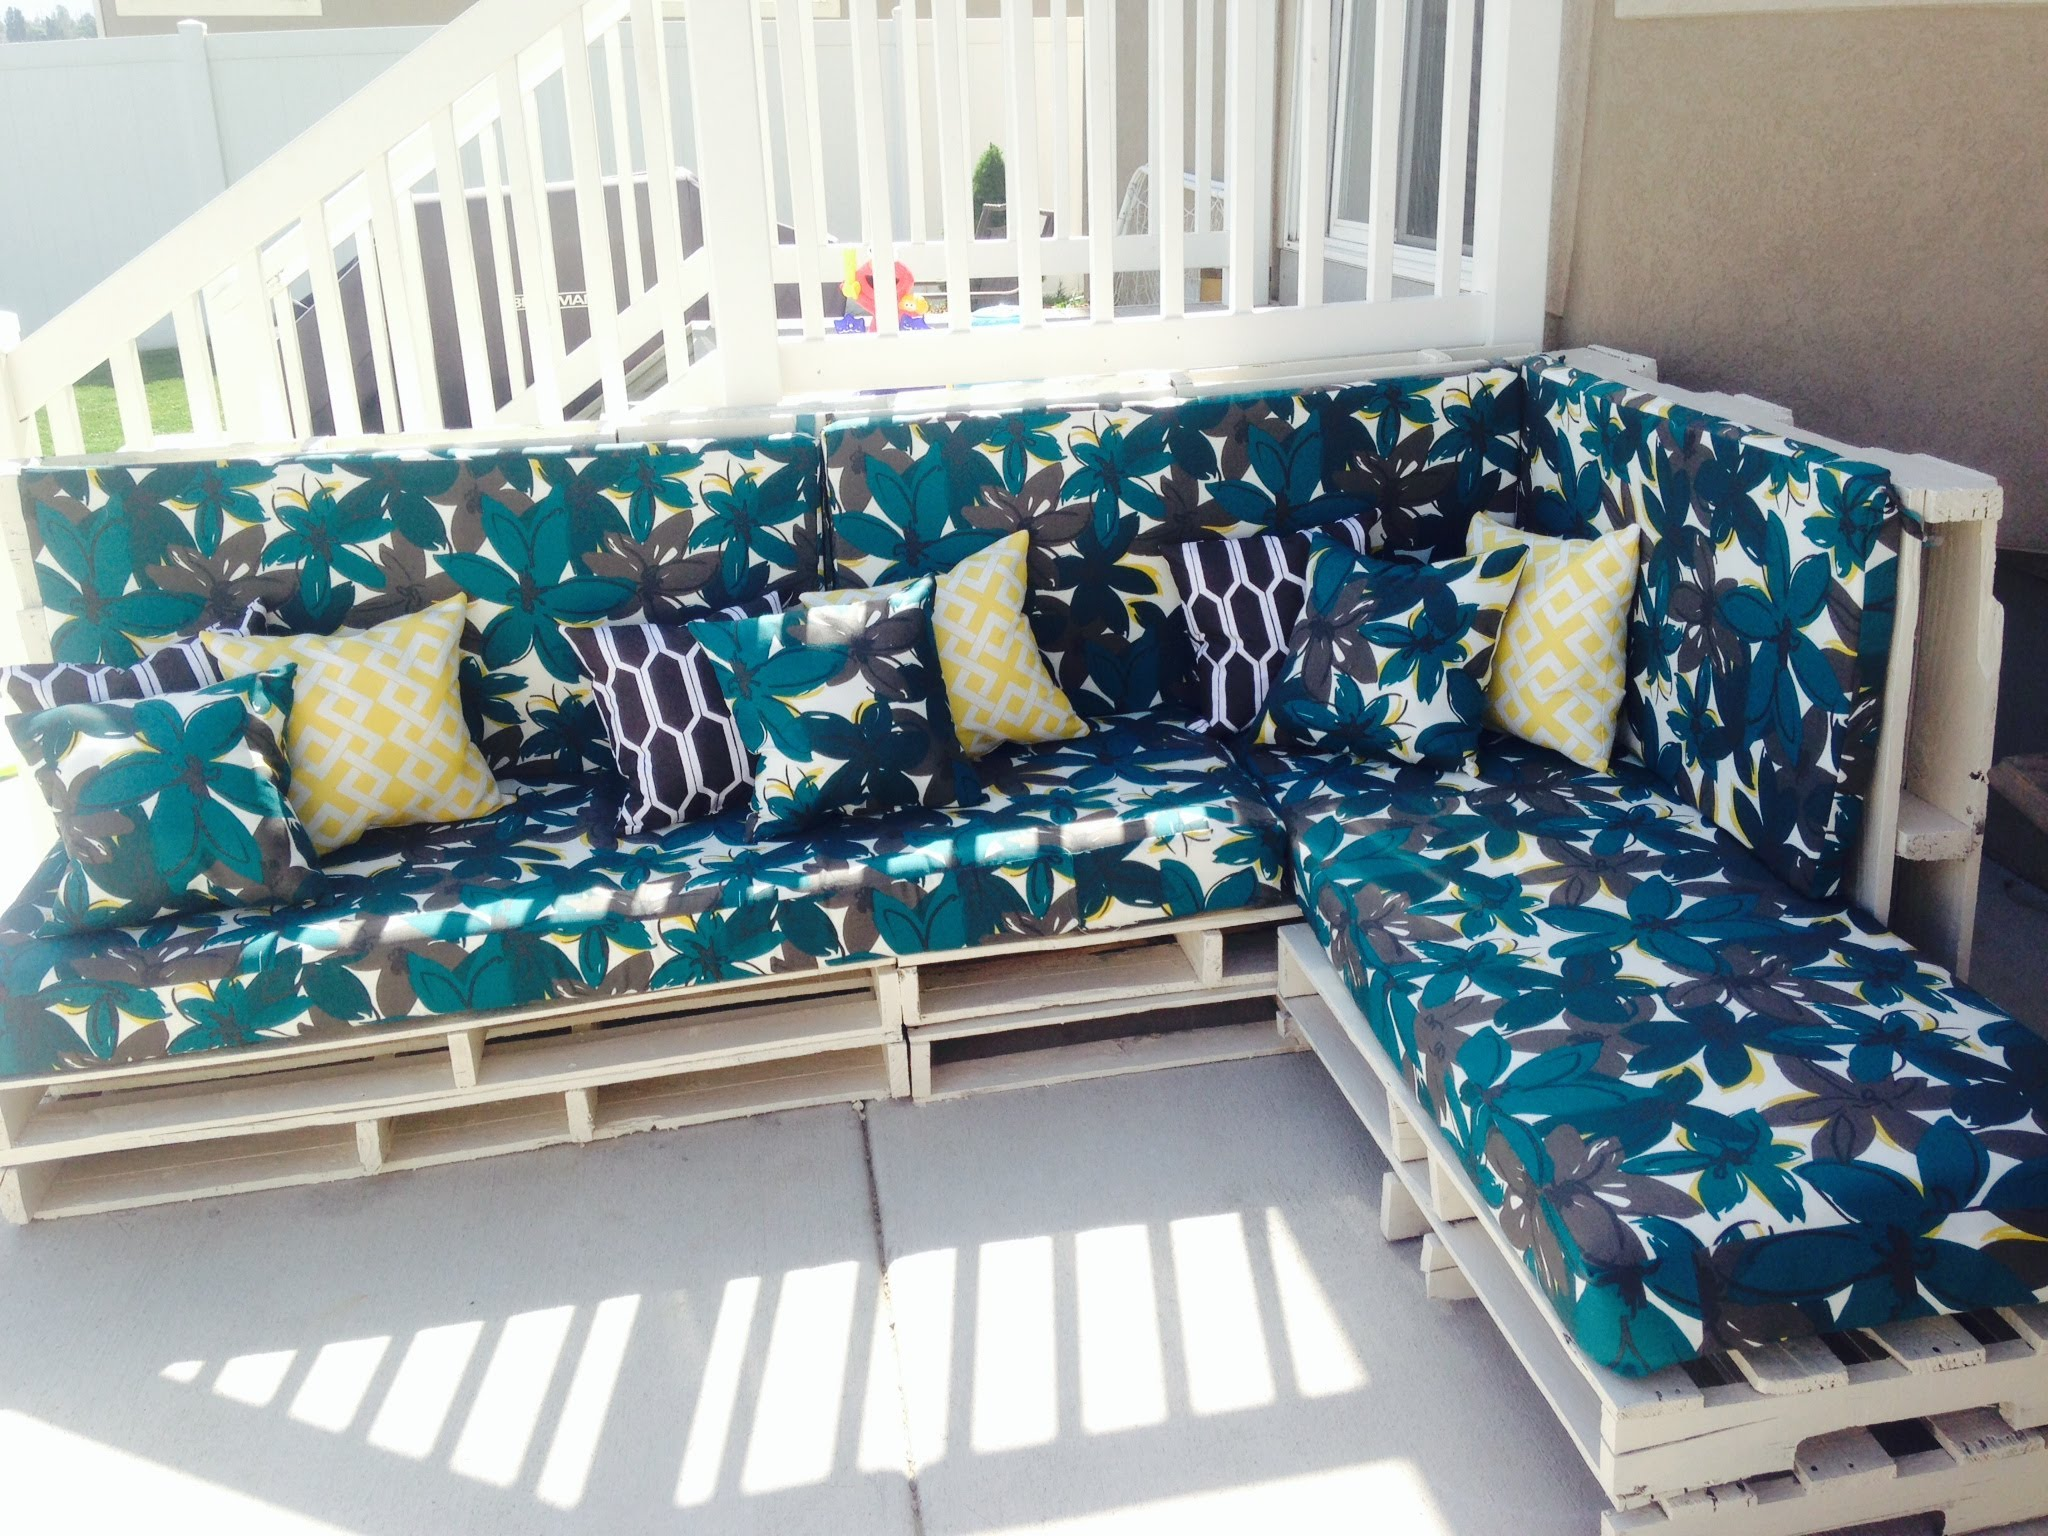 Pallet Home furniture Pinterest Do-it-yourself – Wood PALLET Couch – House design ideas